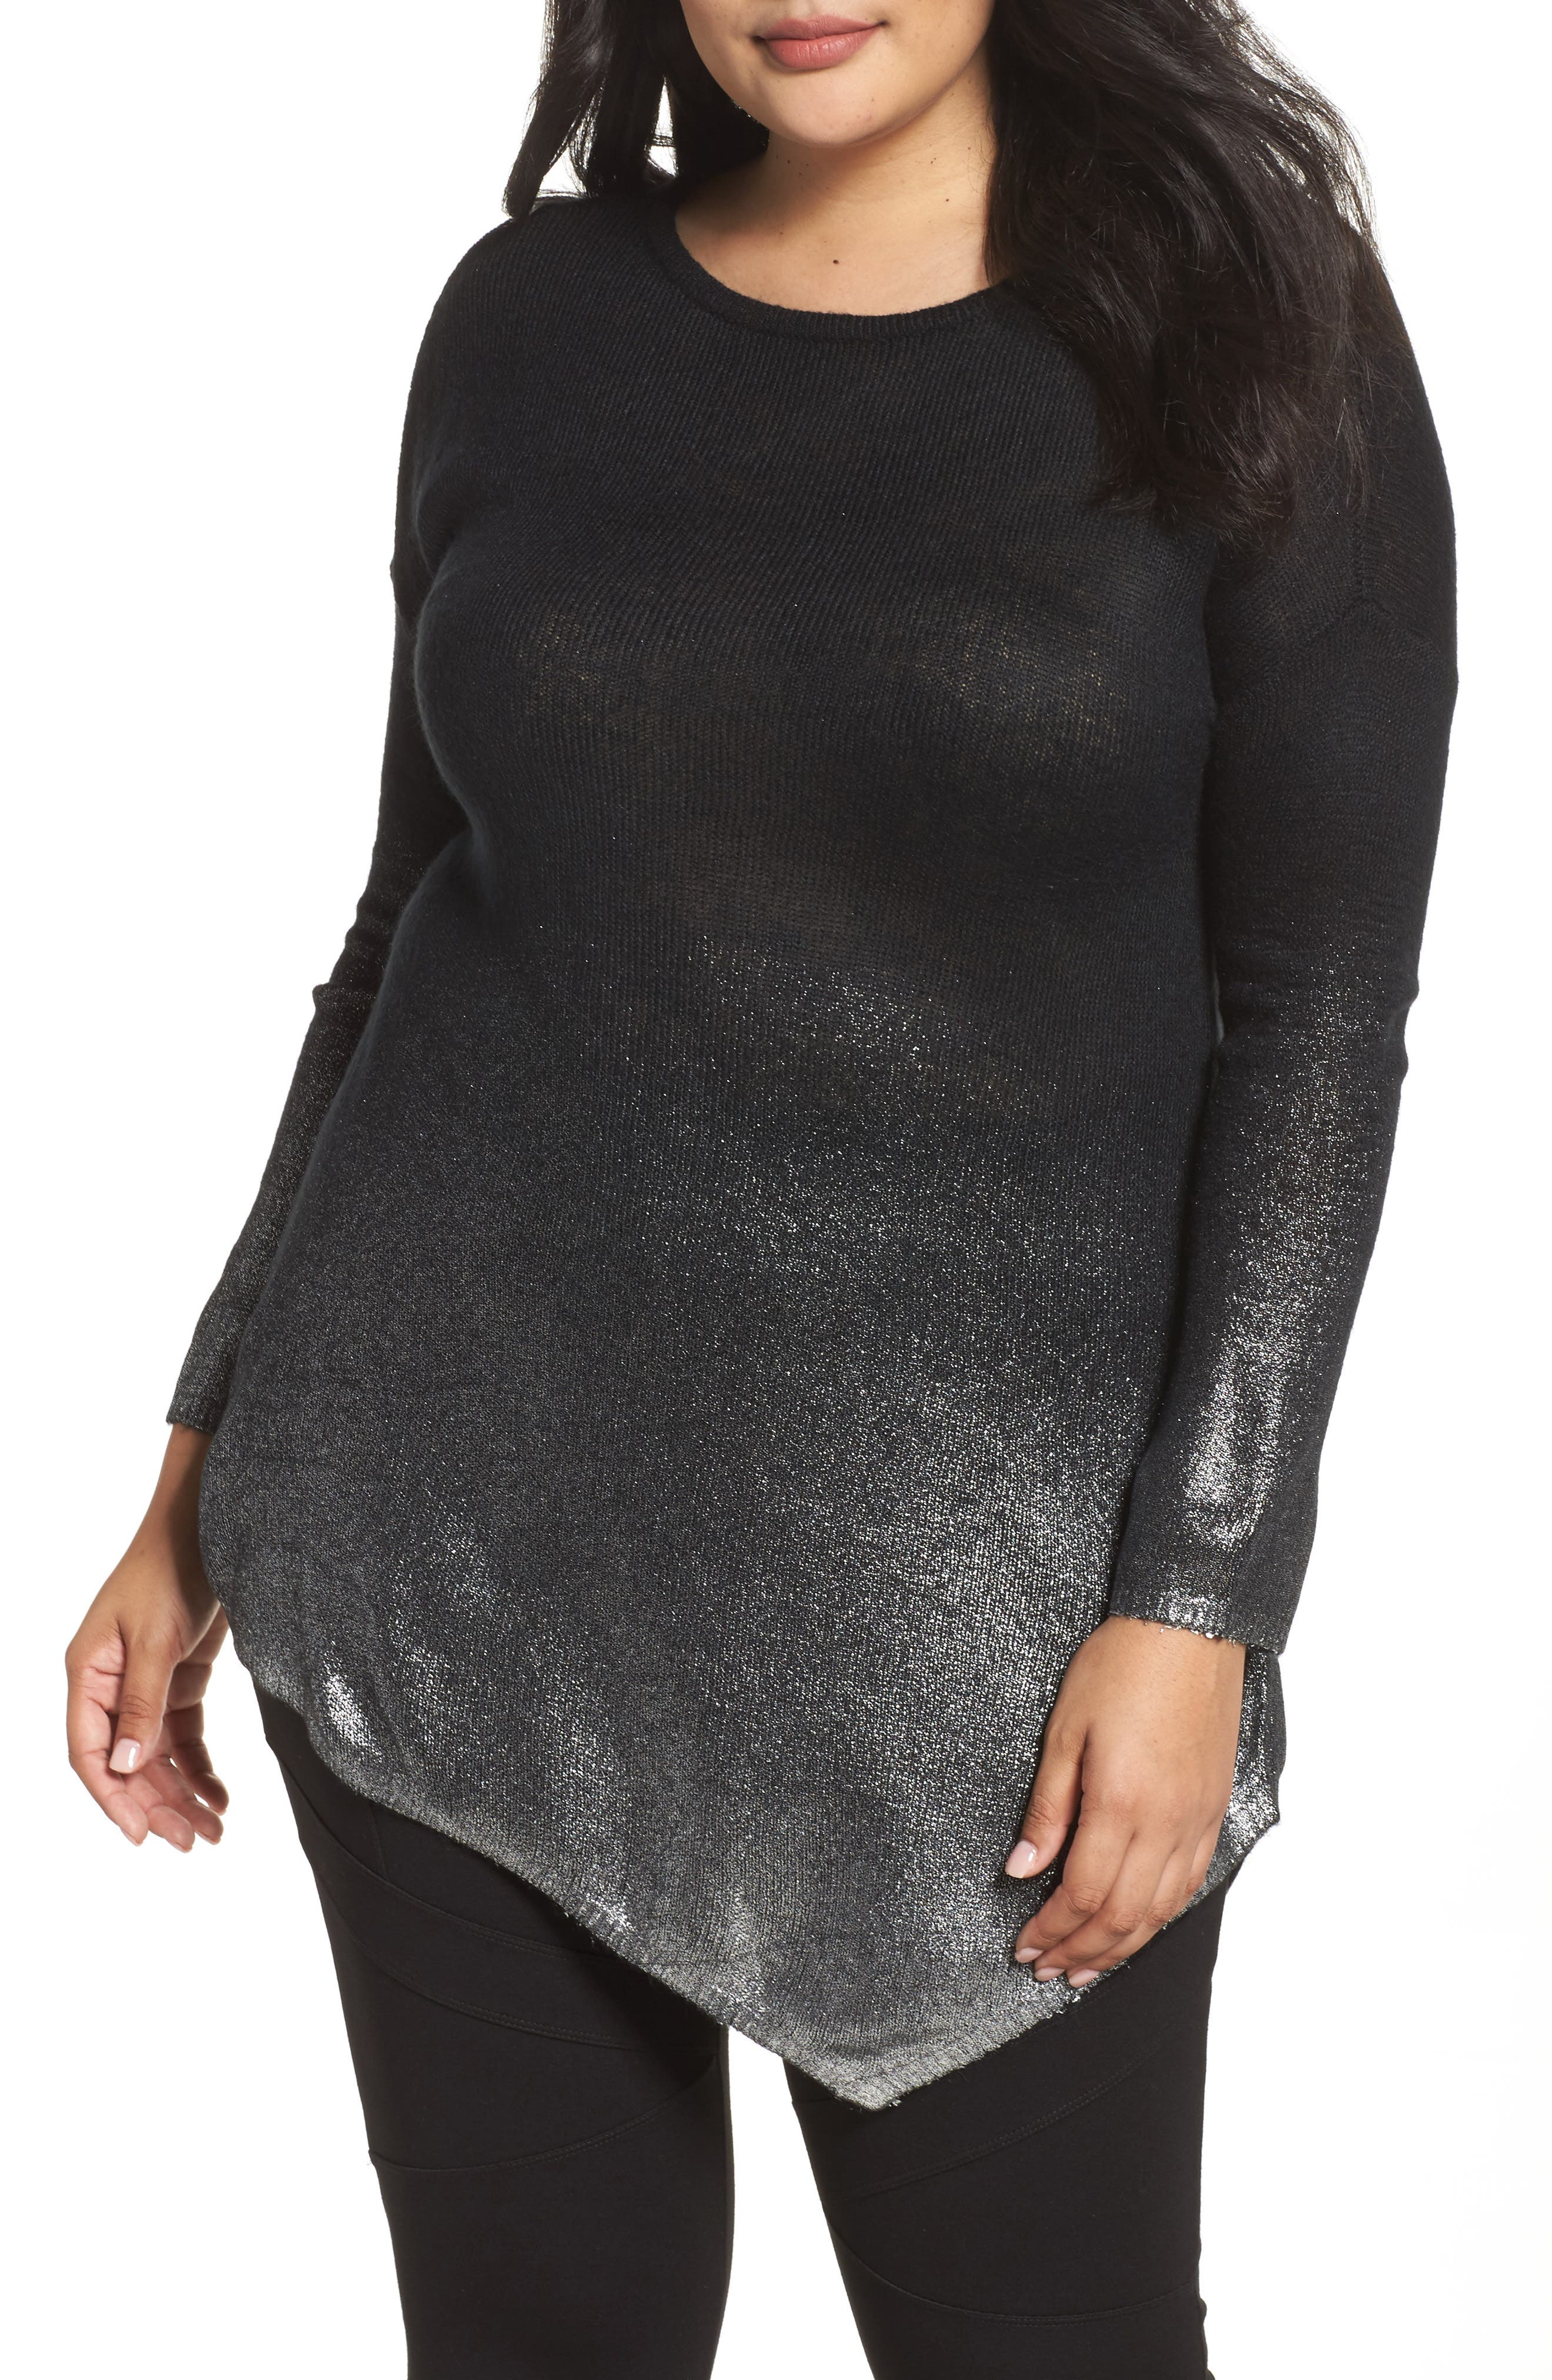 Main Image - Two by Vince Camuto Asymmetrical Metallic Ombré Sweater (Plus Size)